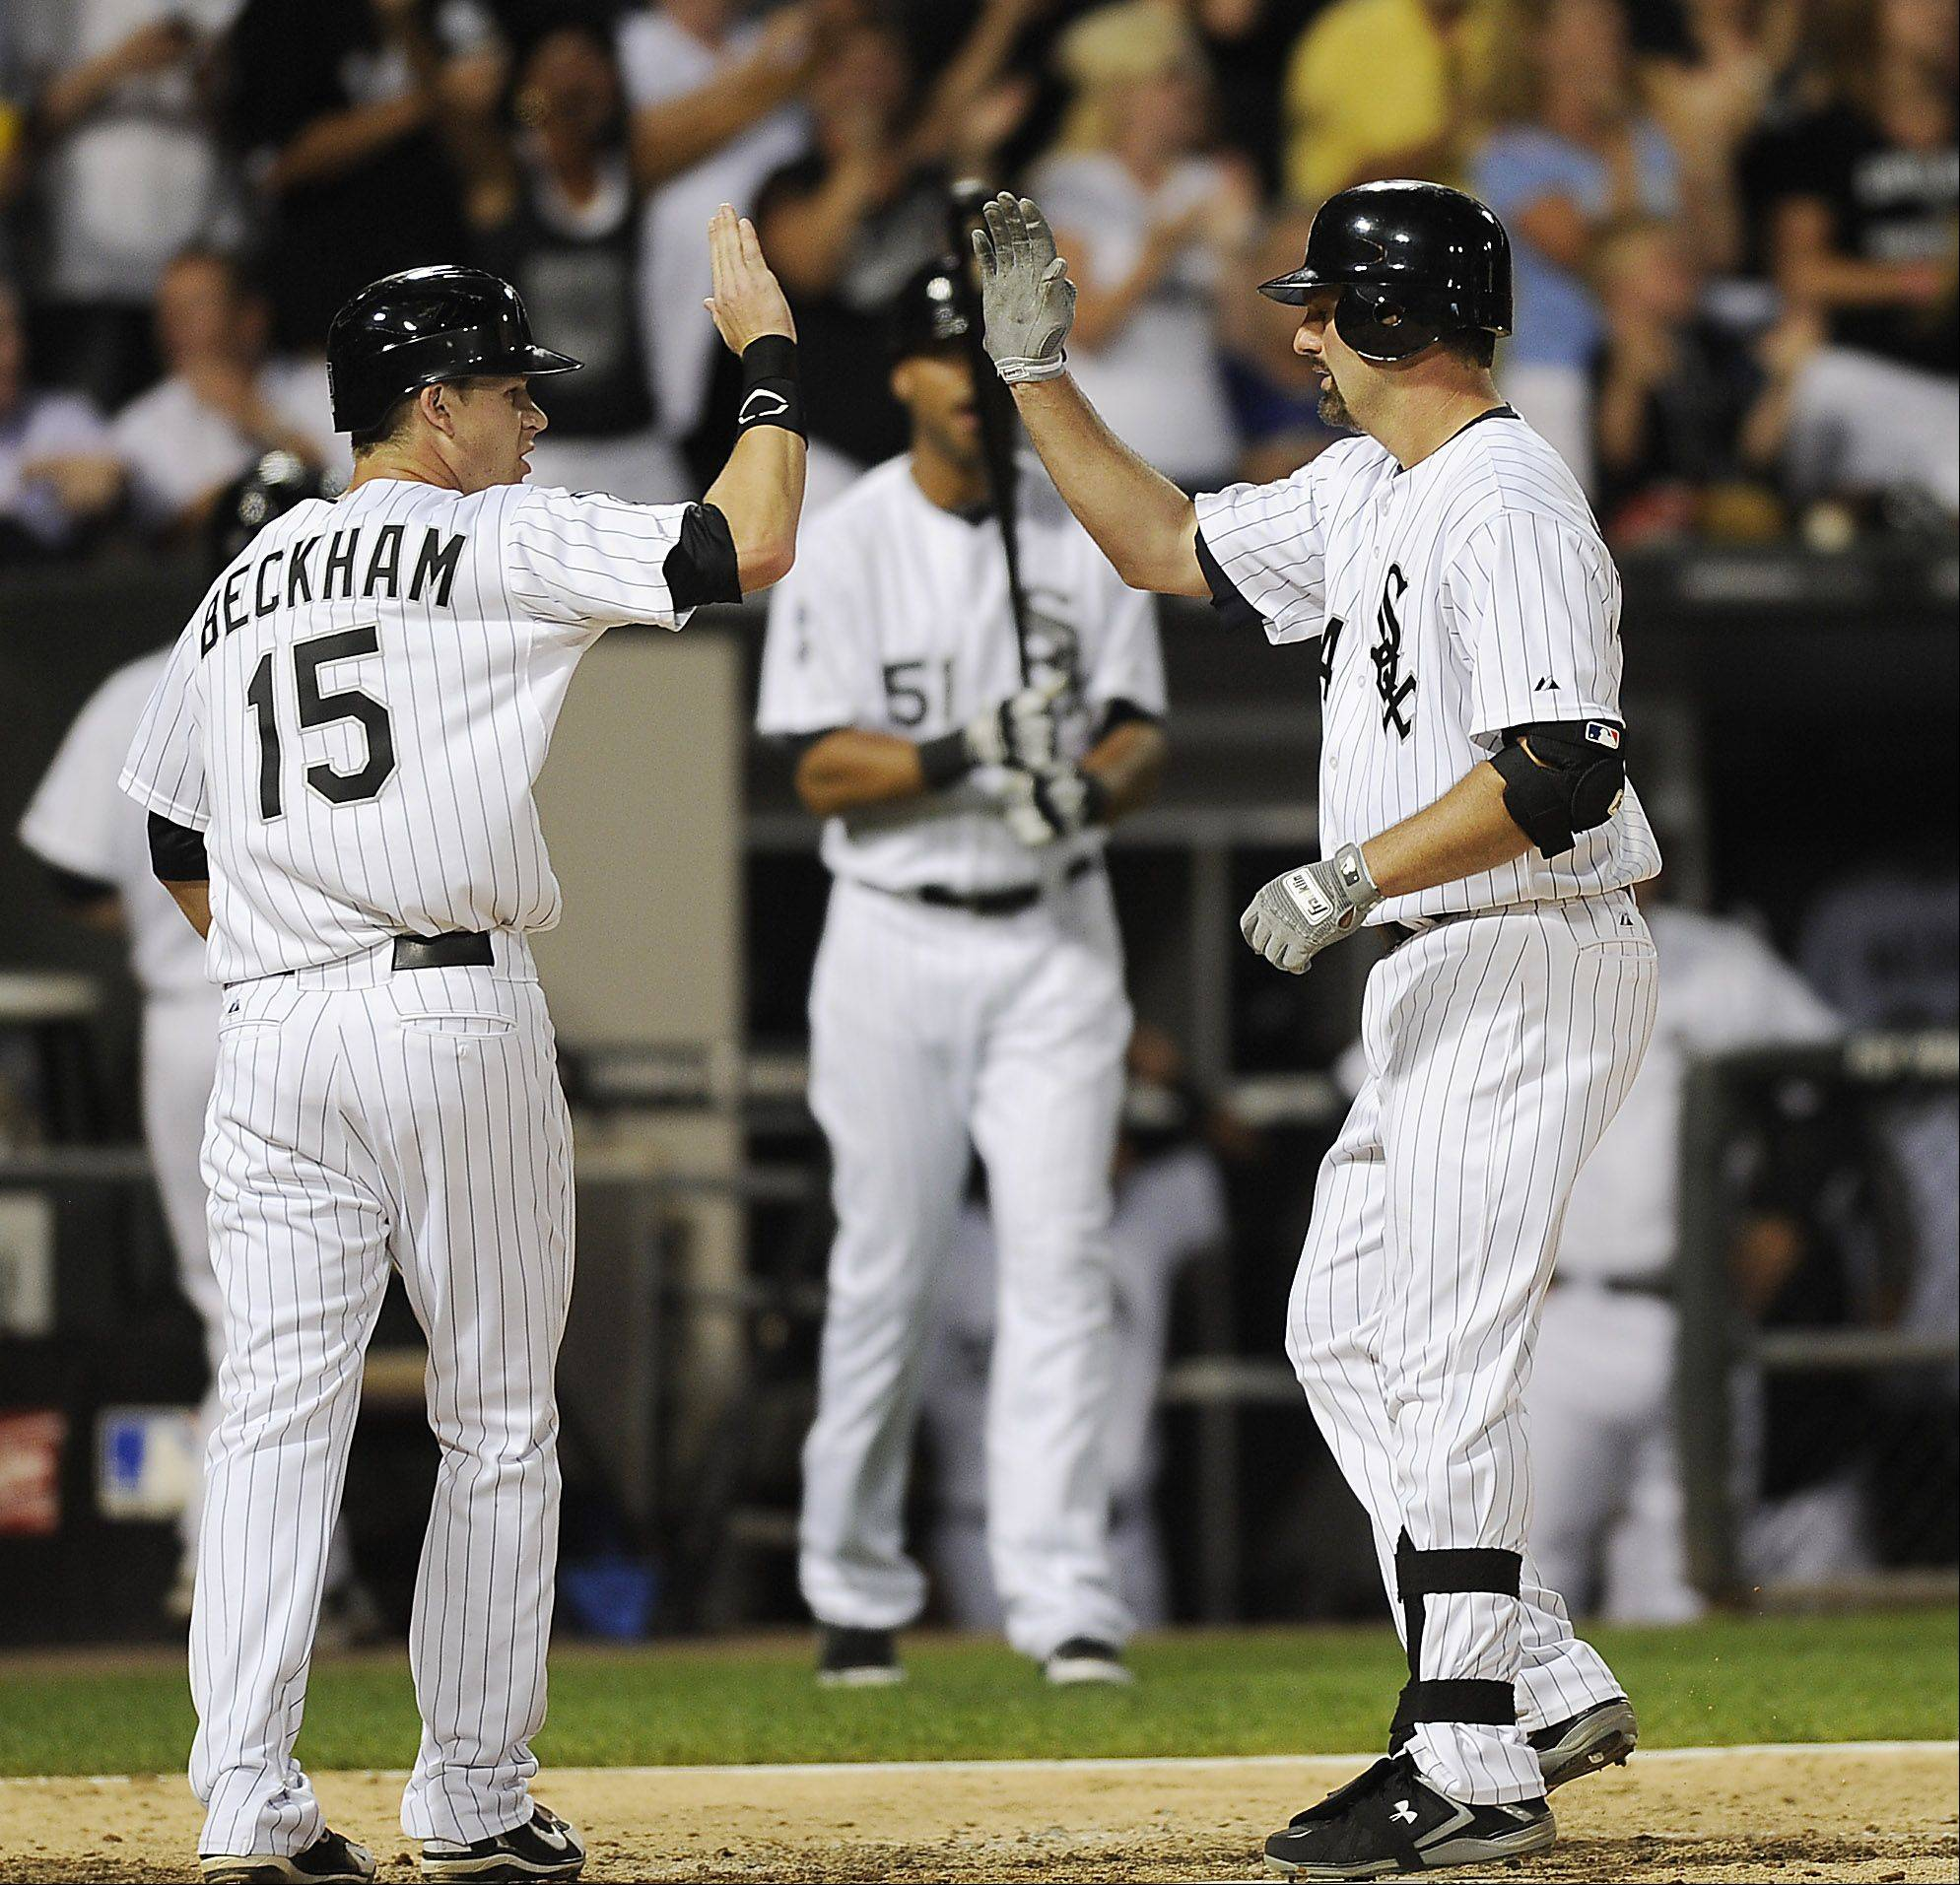 Chicago White Sox Paul Konerko celebrates a home run in the sixth inning wih teammate Gordon Beckham.